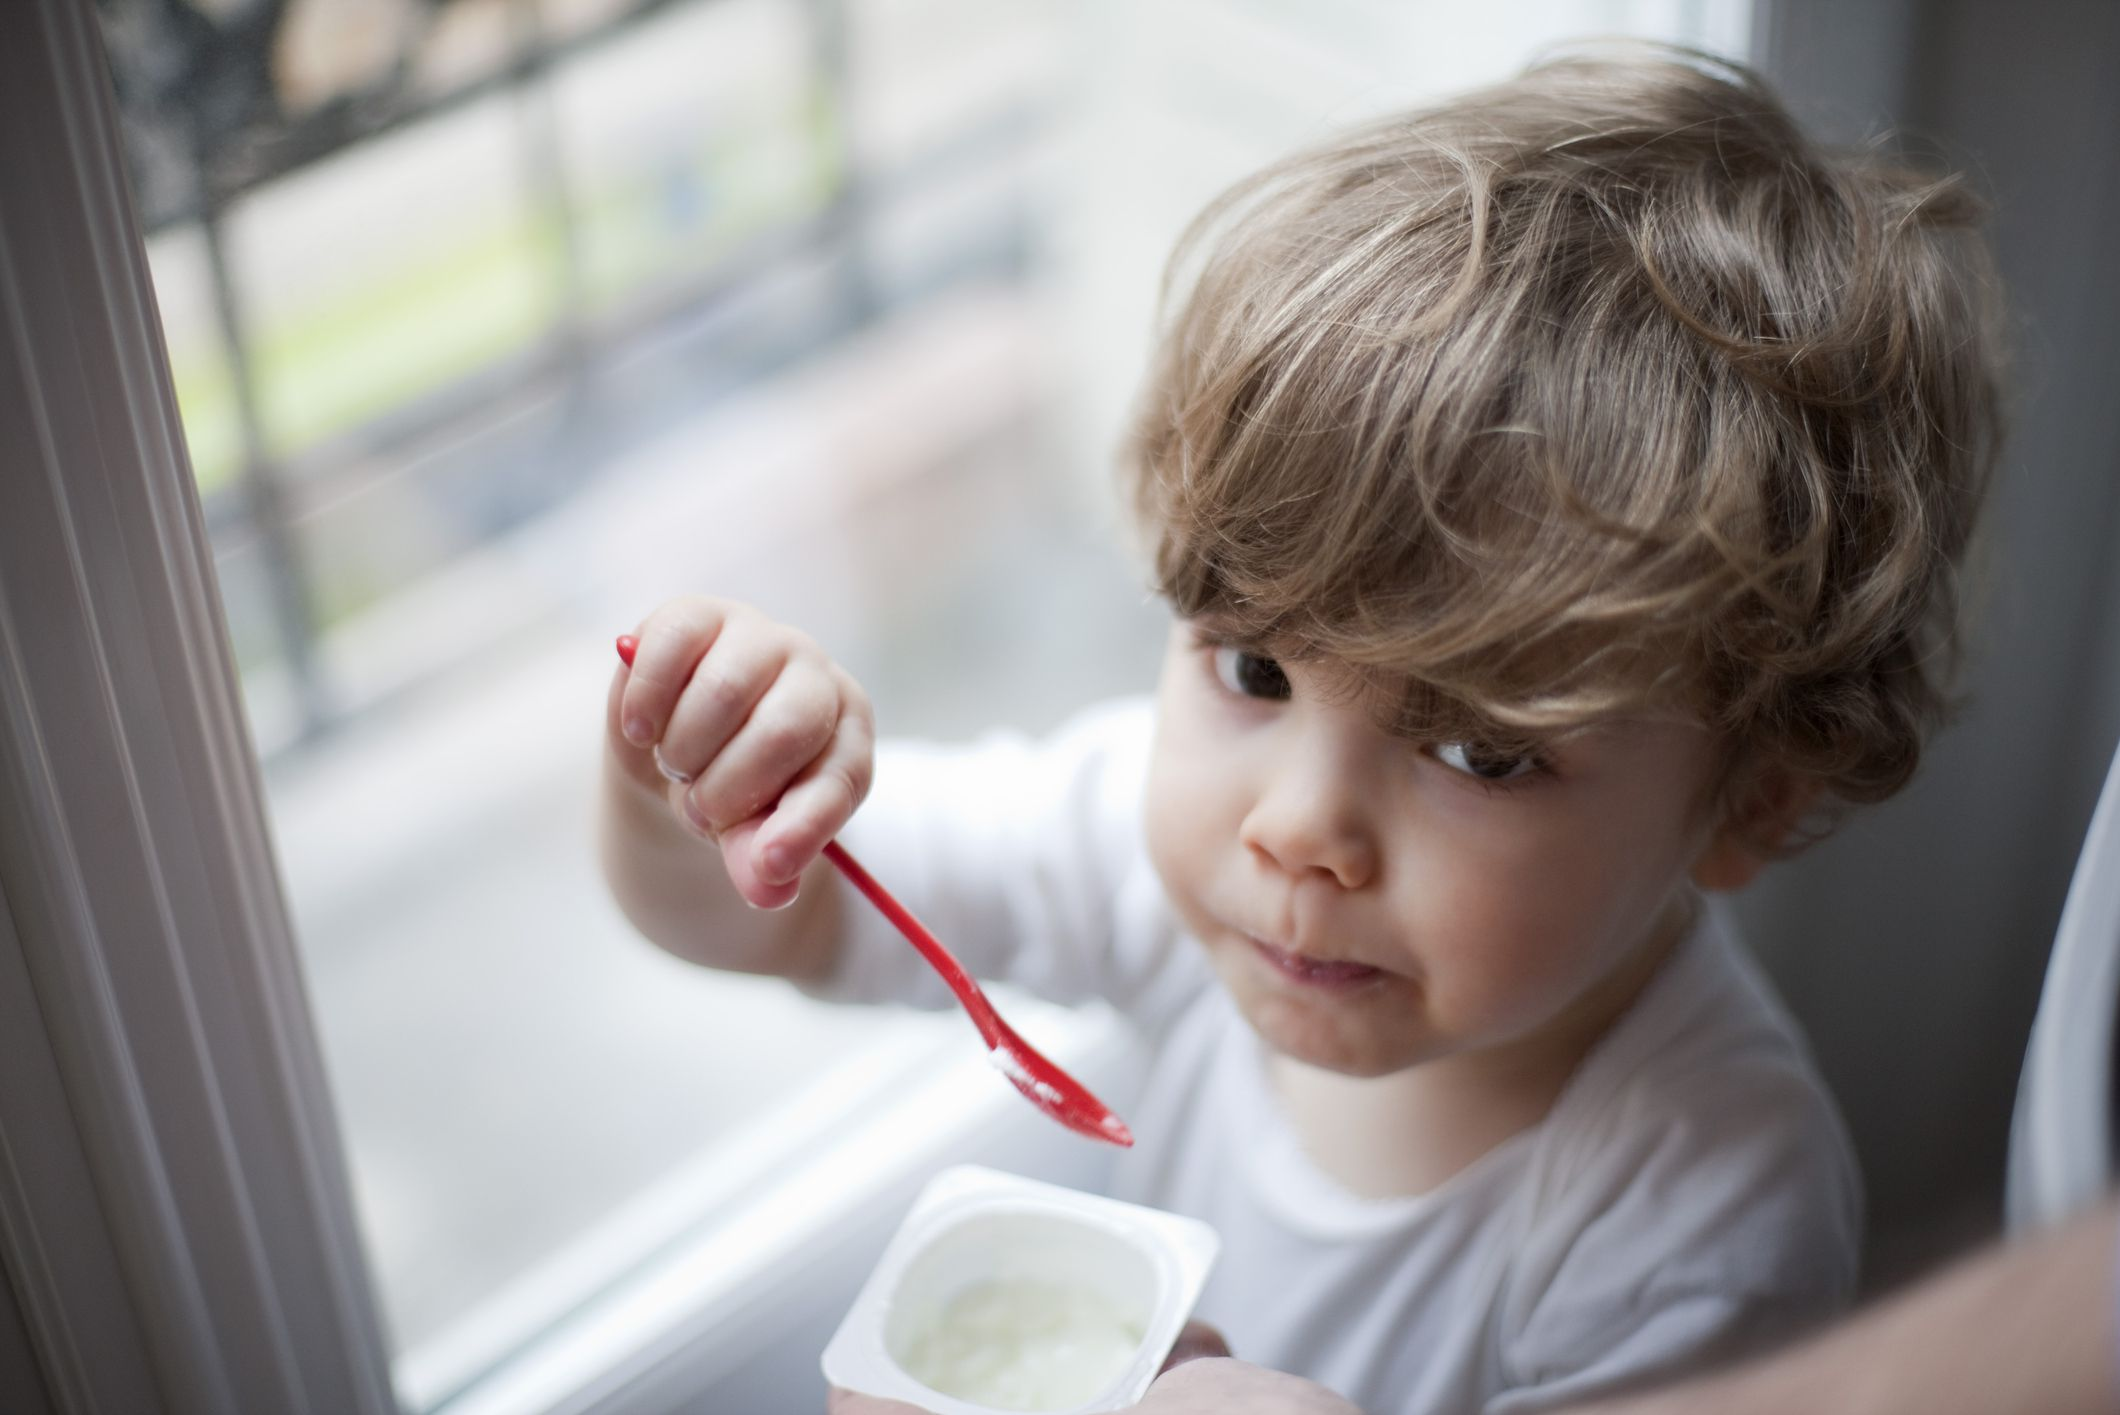 When Can My Toddler Have Yogurt?